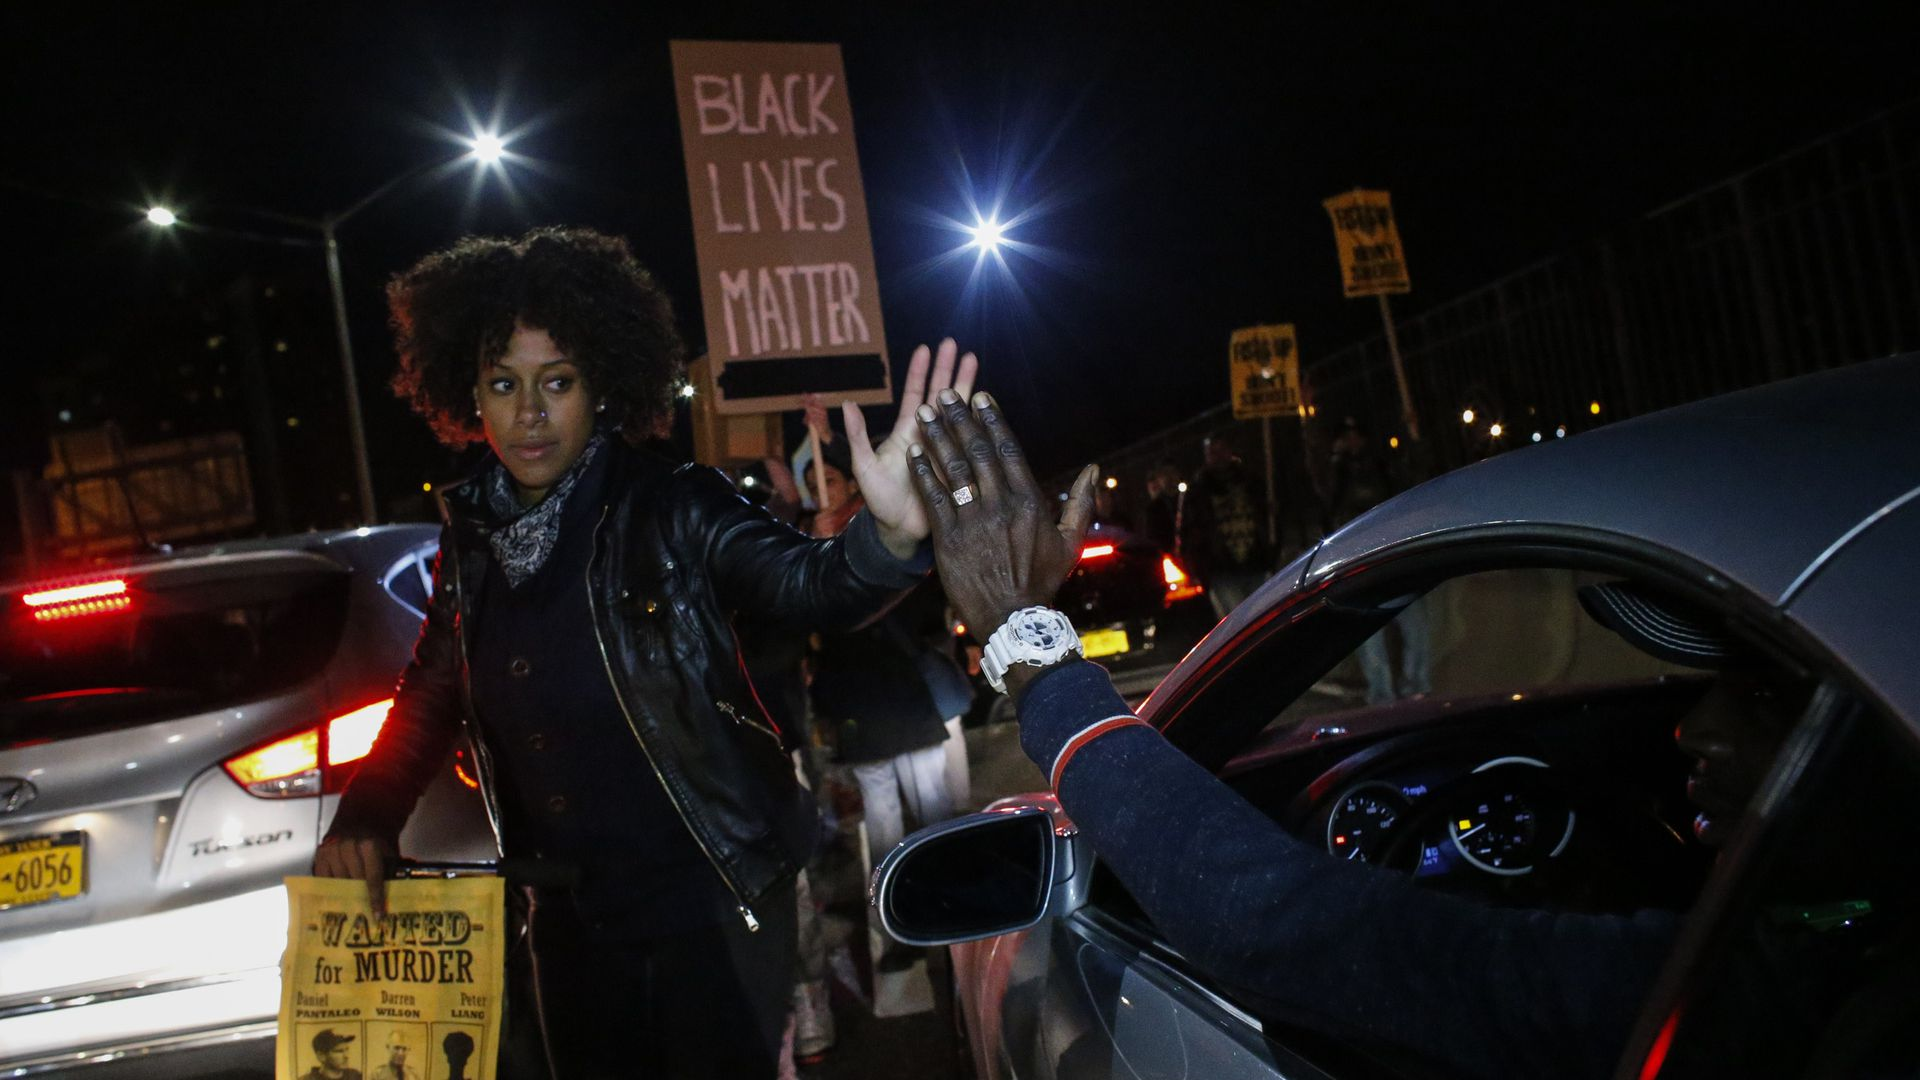 A driver shakes hands with a demonstrator during a protest march in New York City after a grand jury declined to prosecute a white police officer for the killing Michael Brown.